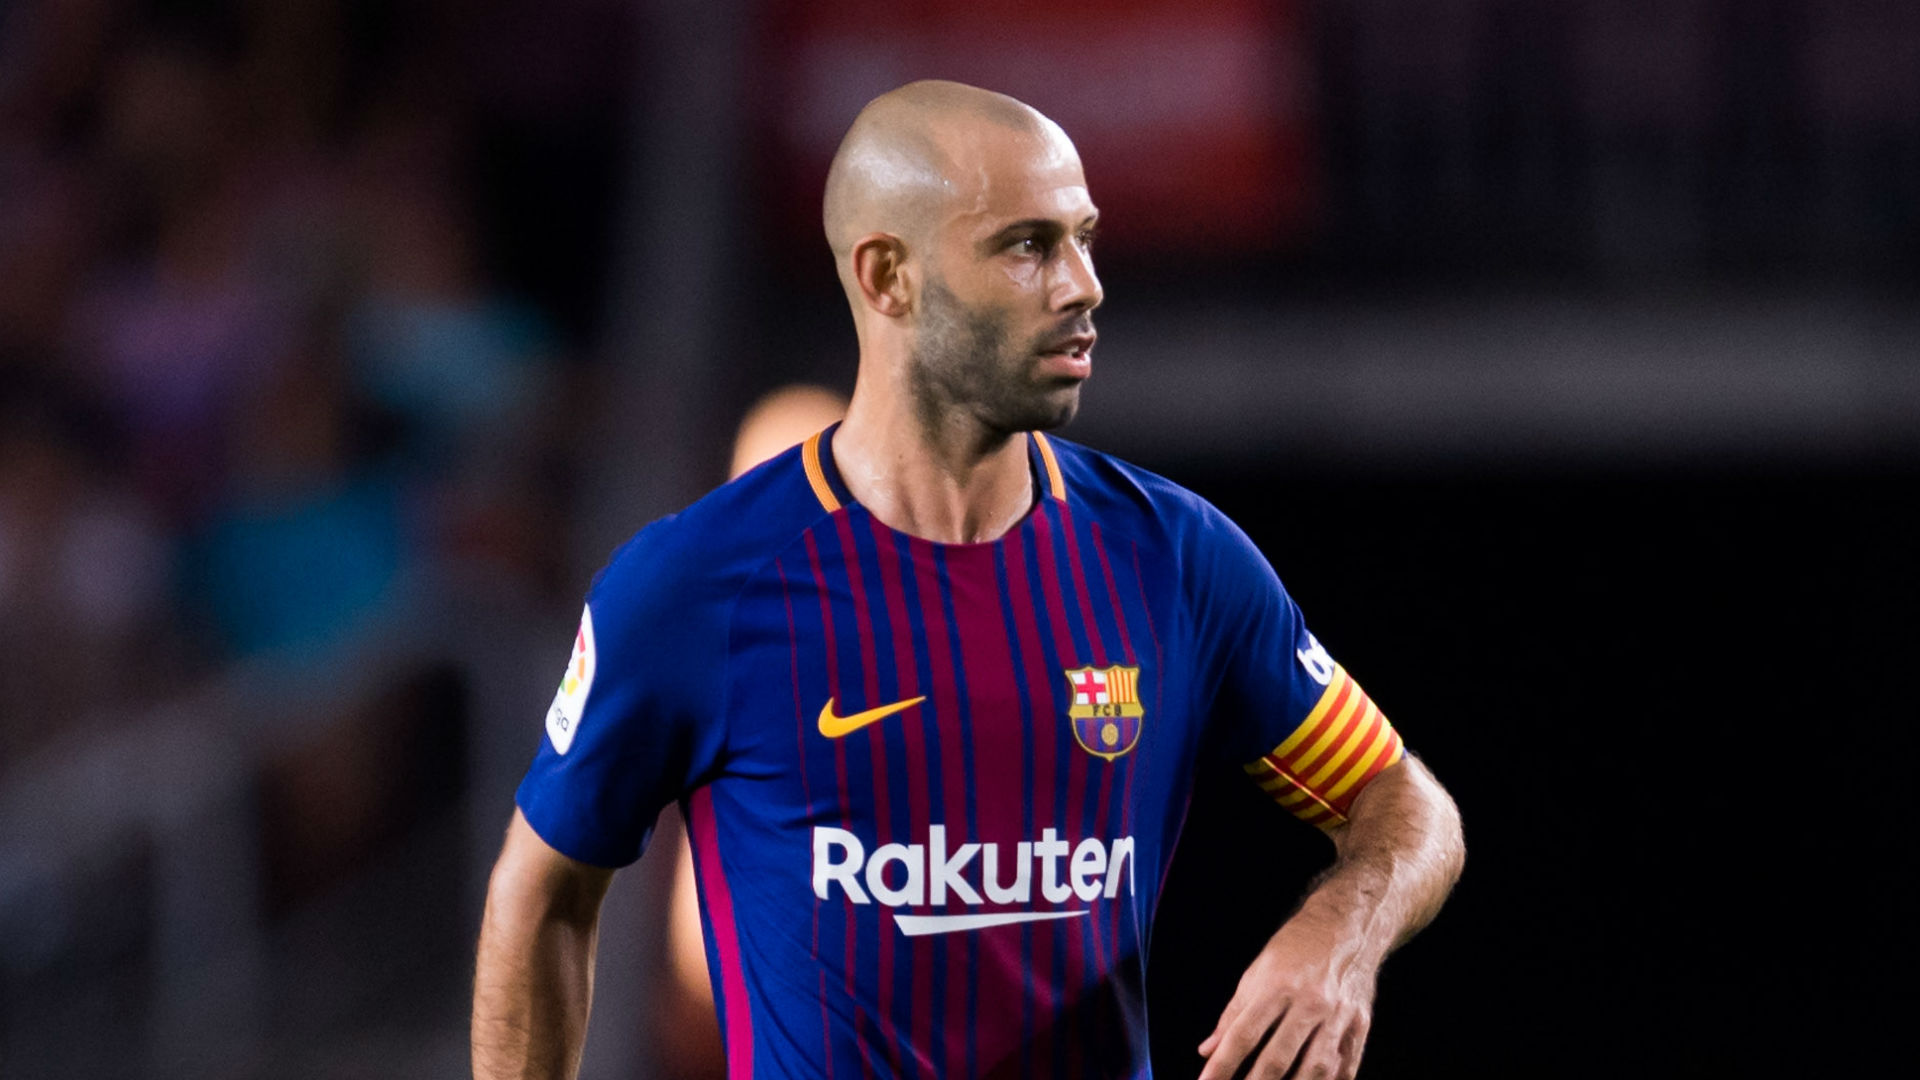 Liverpool return unlikely as Mascherano airs River Plate ambition